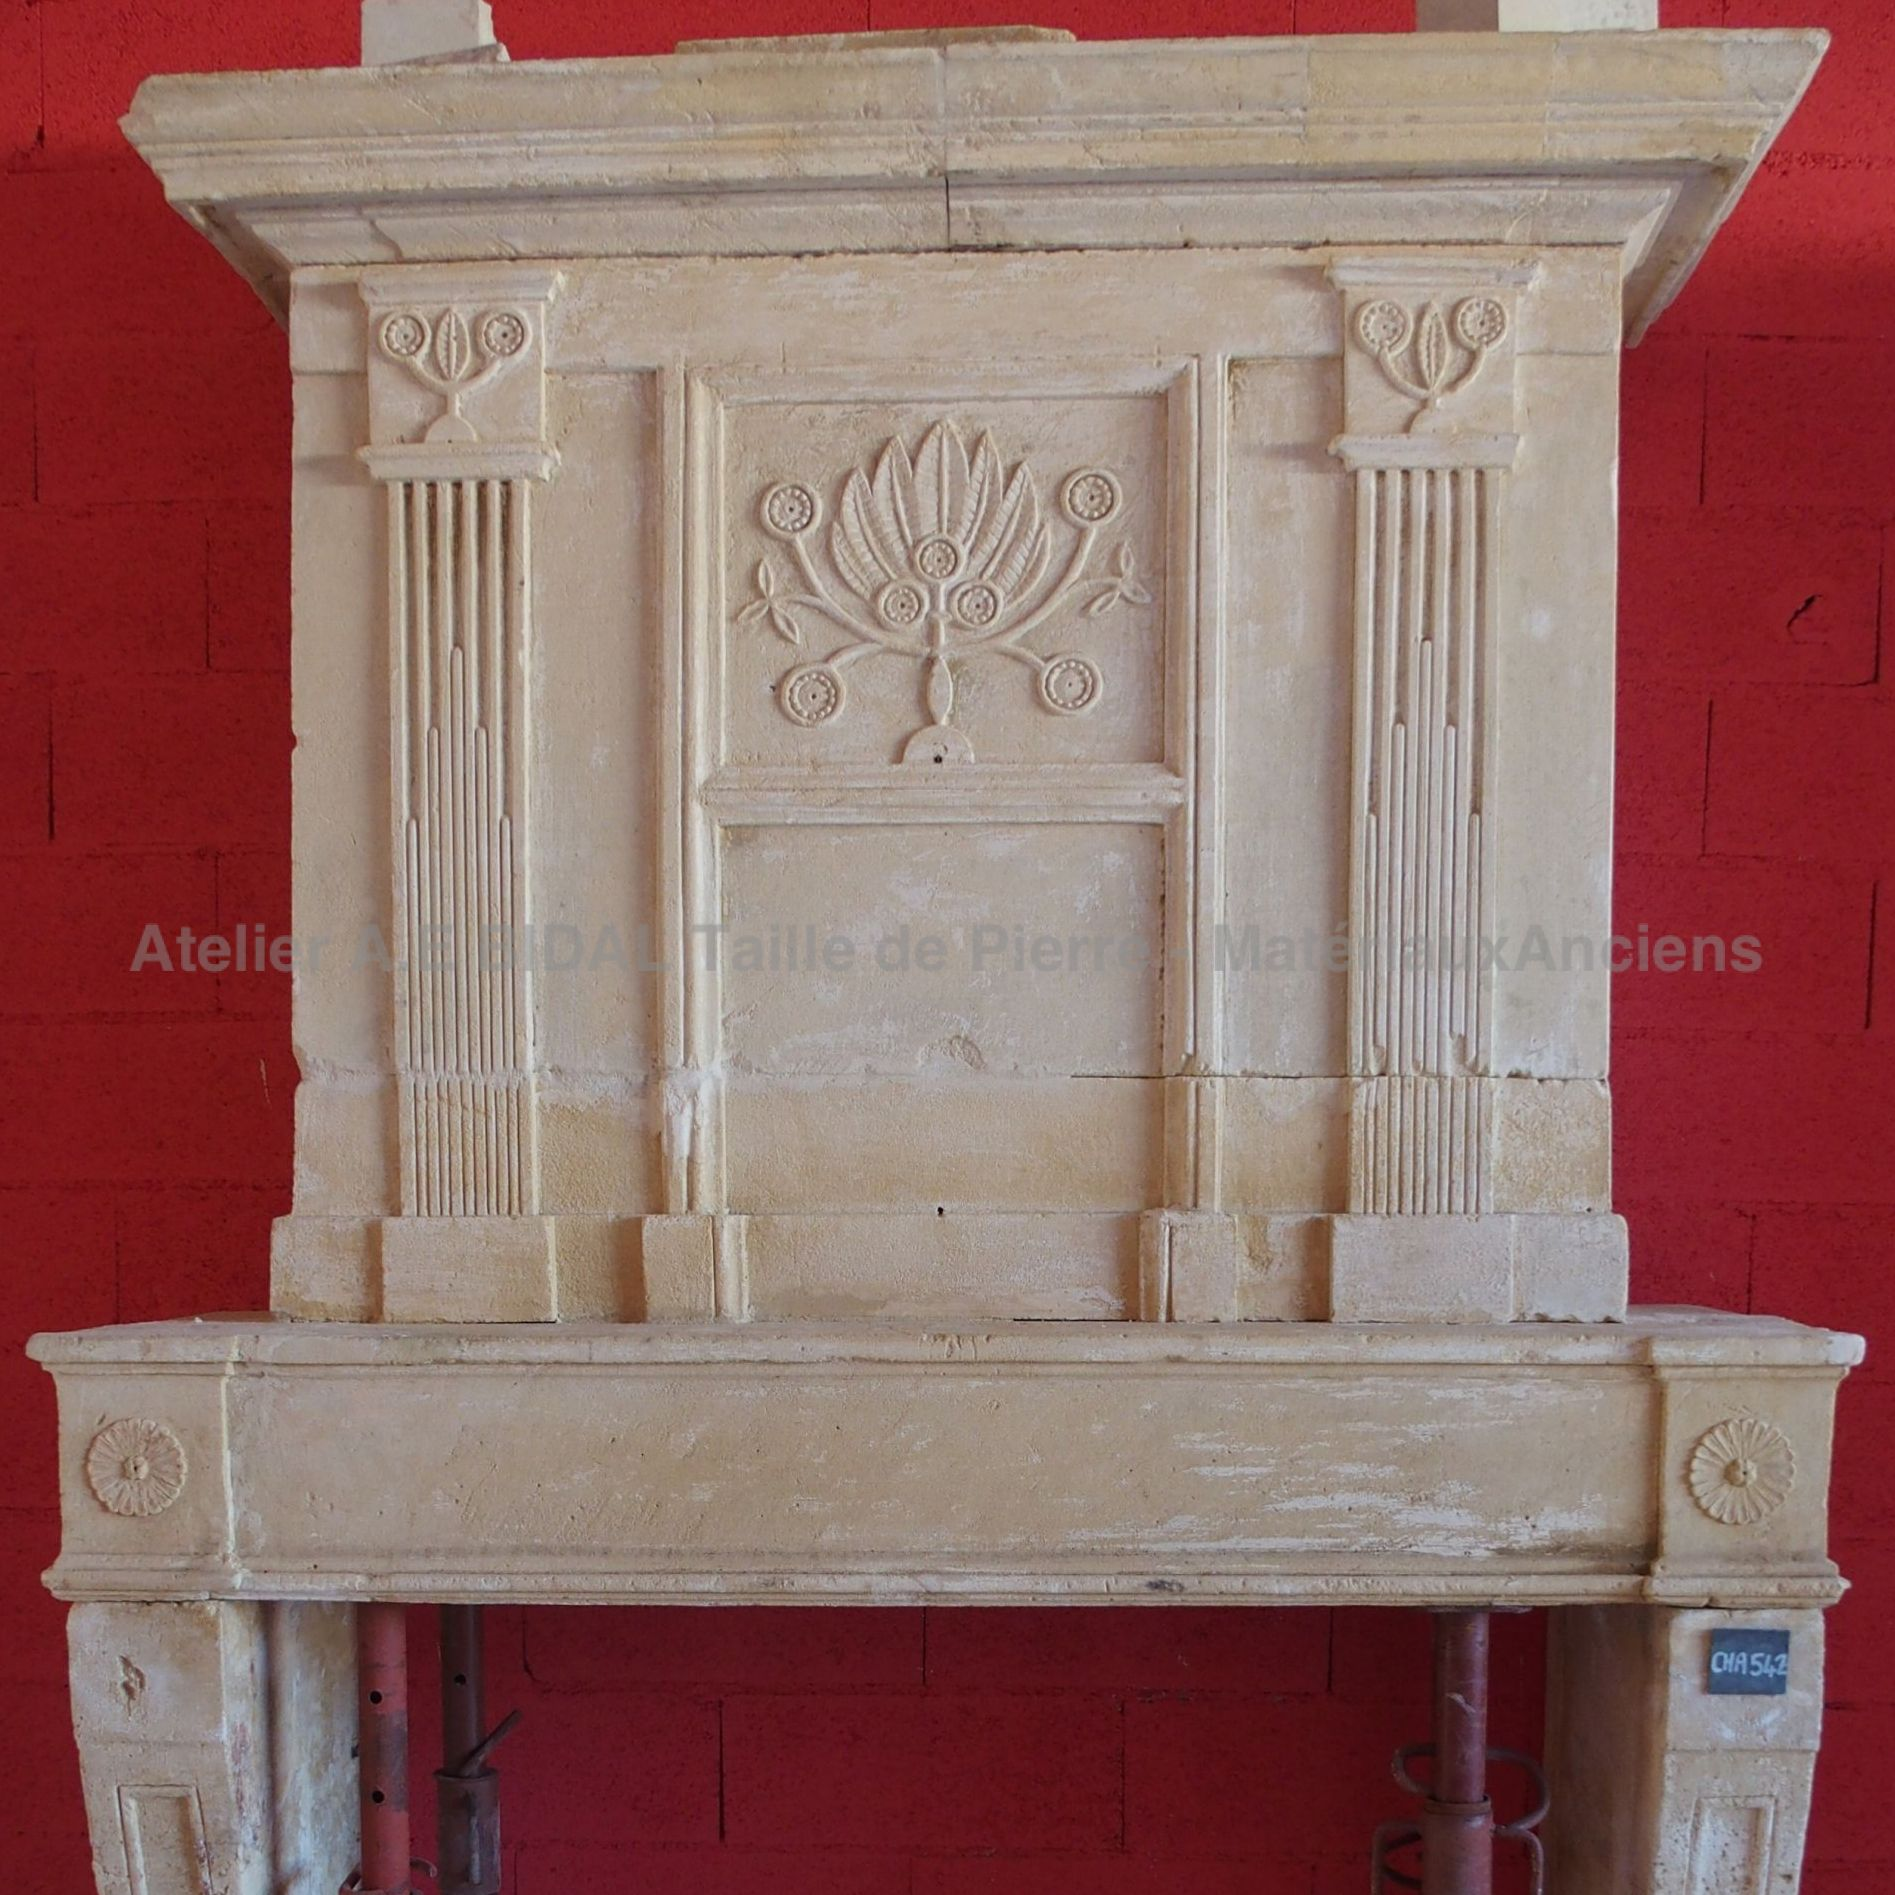 Louis XVI fireplace - an old fireplace in Louis XVI style made of stone.